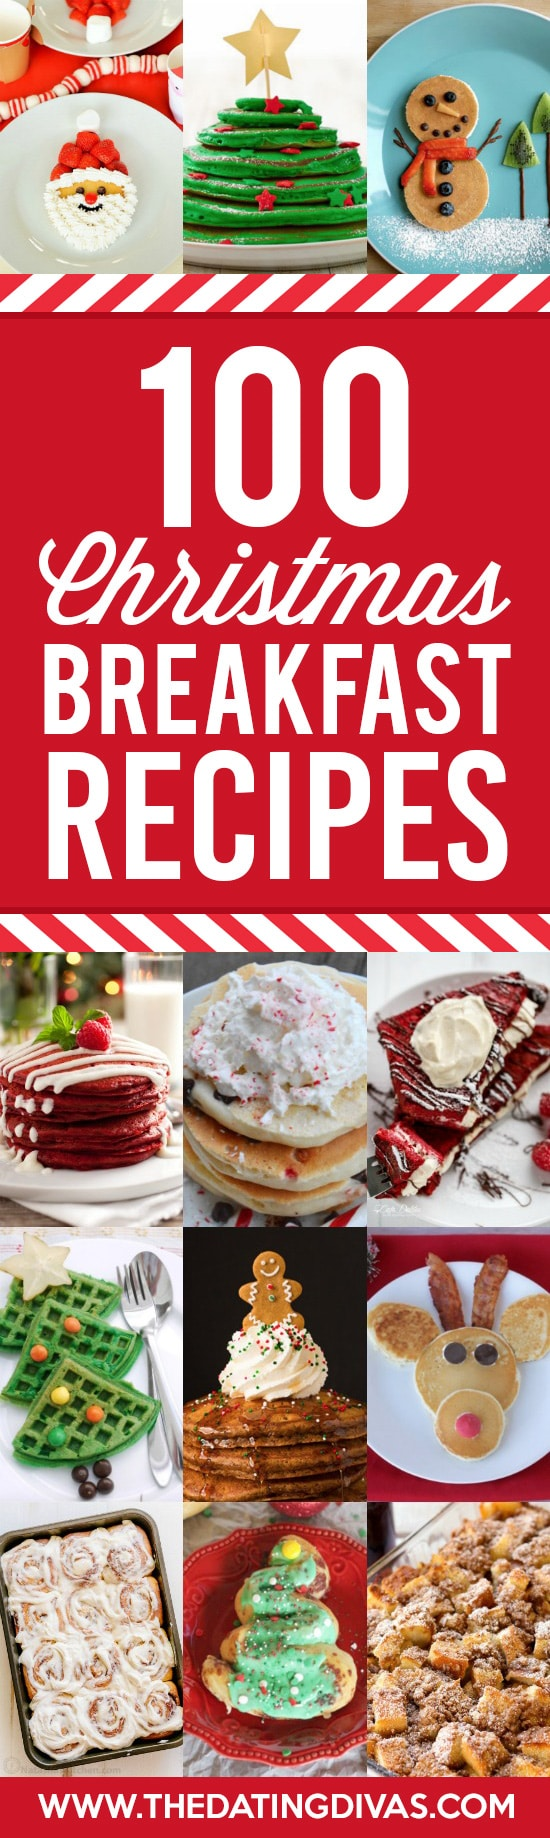 Favorite Christmas Breakfast Recipes